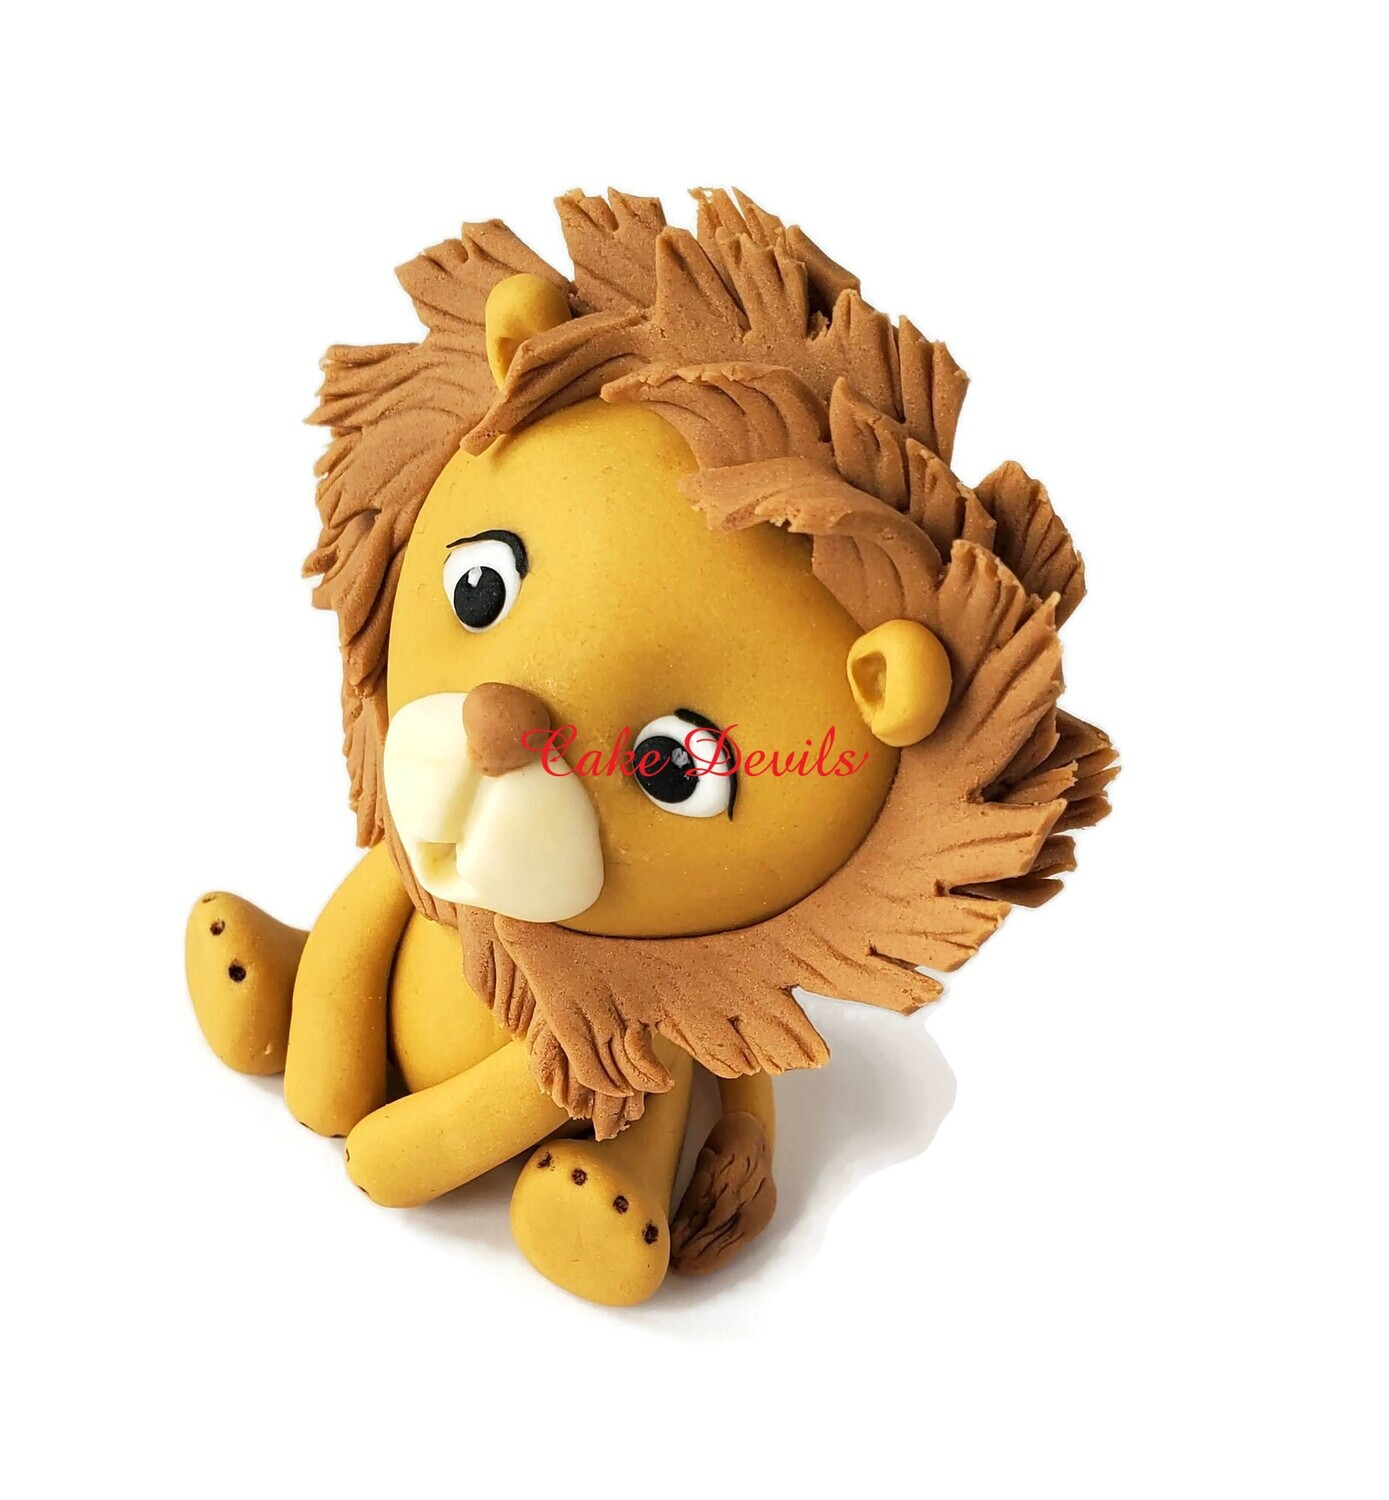 Fondant Lion Cake Topper, perfect for a Safari, Wild One, or King of the Jungle Cake